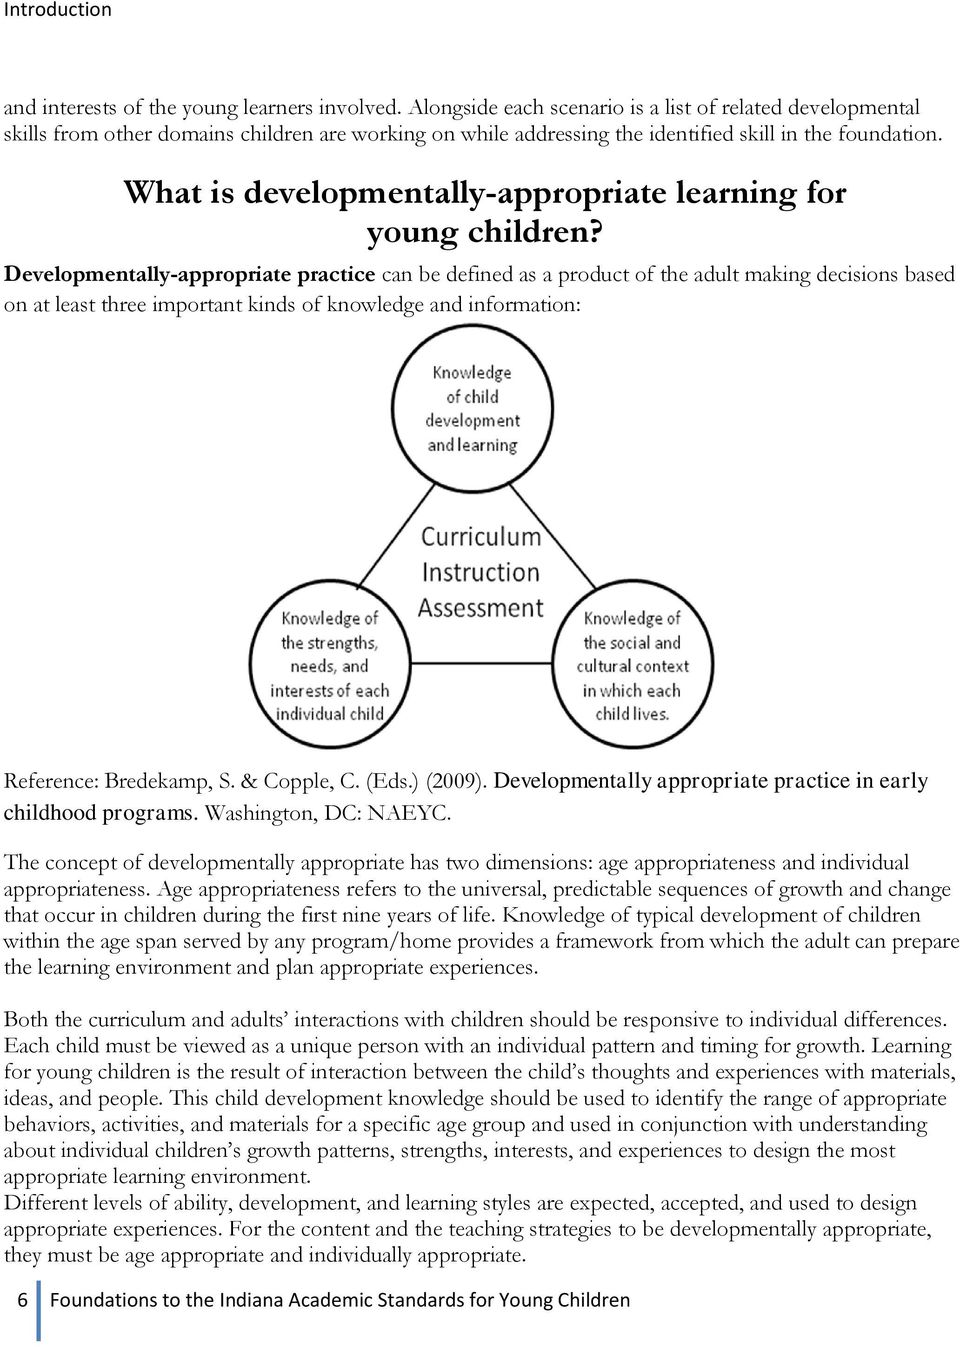 what is the definition of developmentally appropriate practice